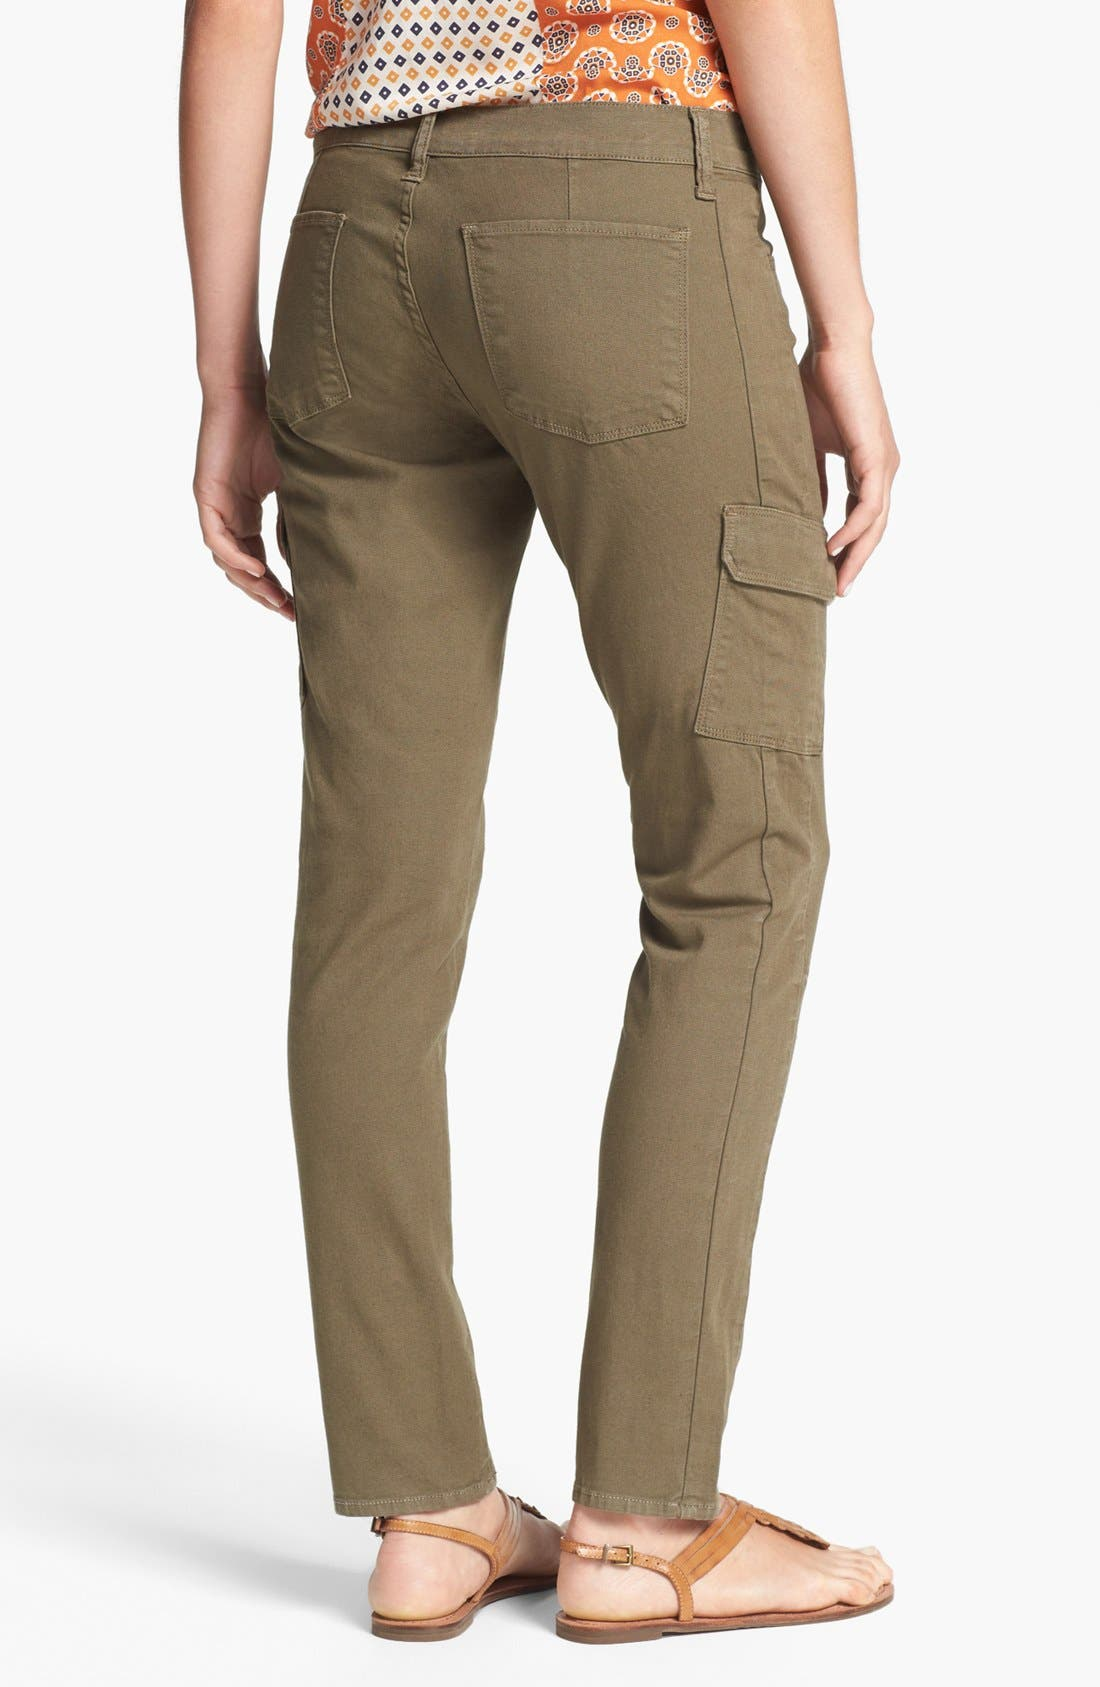 'Charlie' Cargo Skinny Pants,                             Alternate thumbnail 2, color,                             Army Green